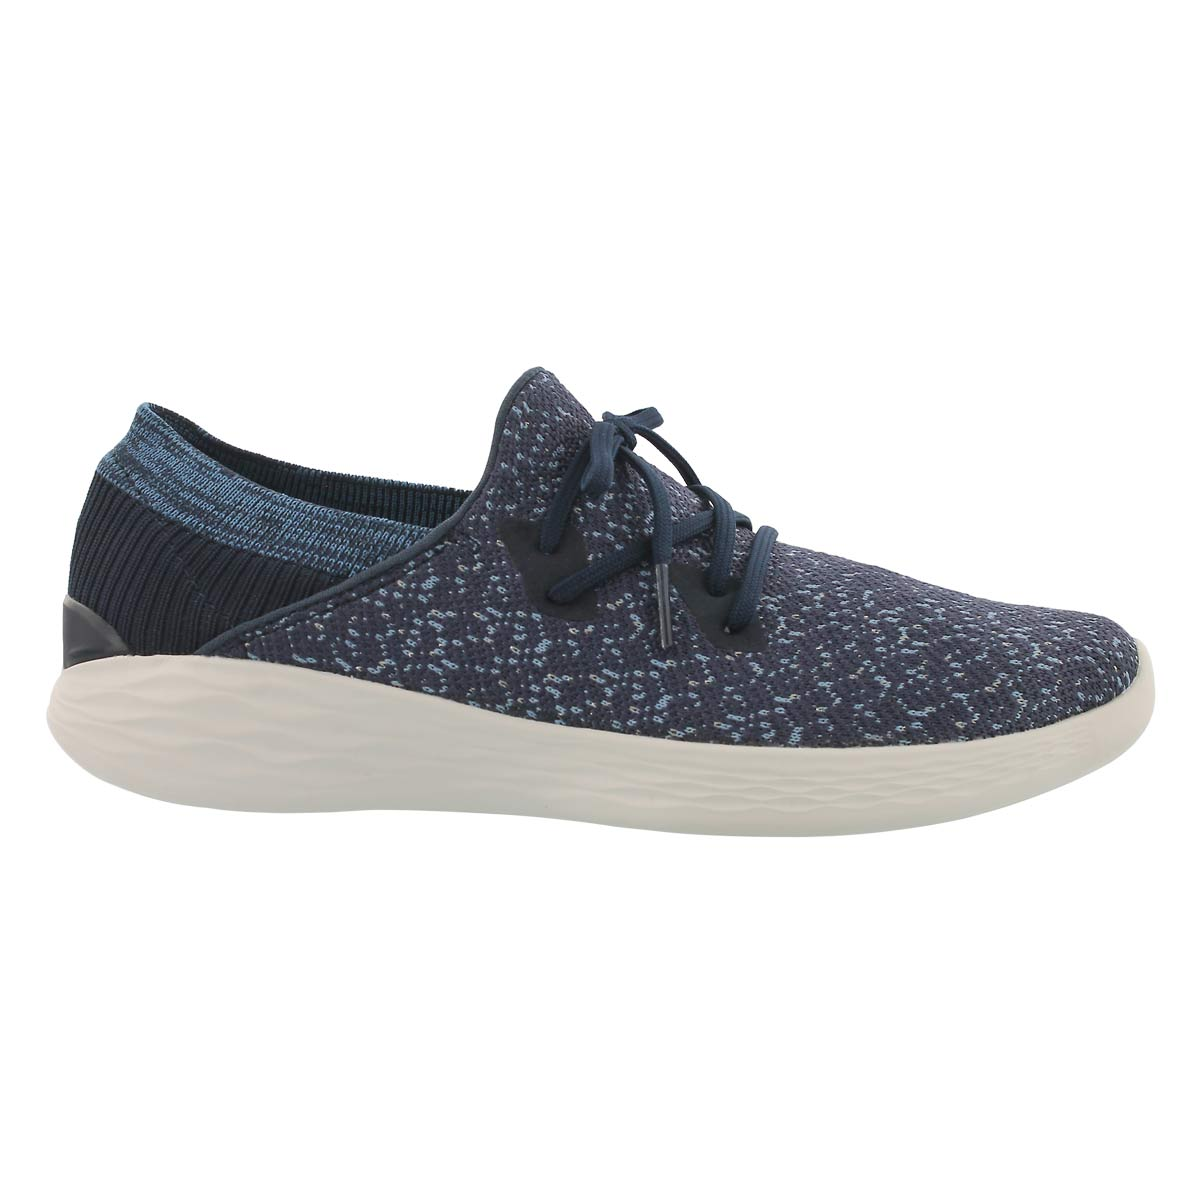 Lds You Exhale navy slip on sneaker